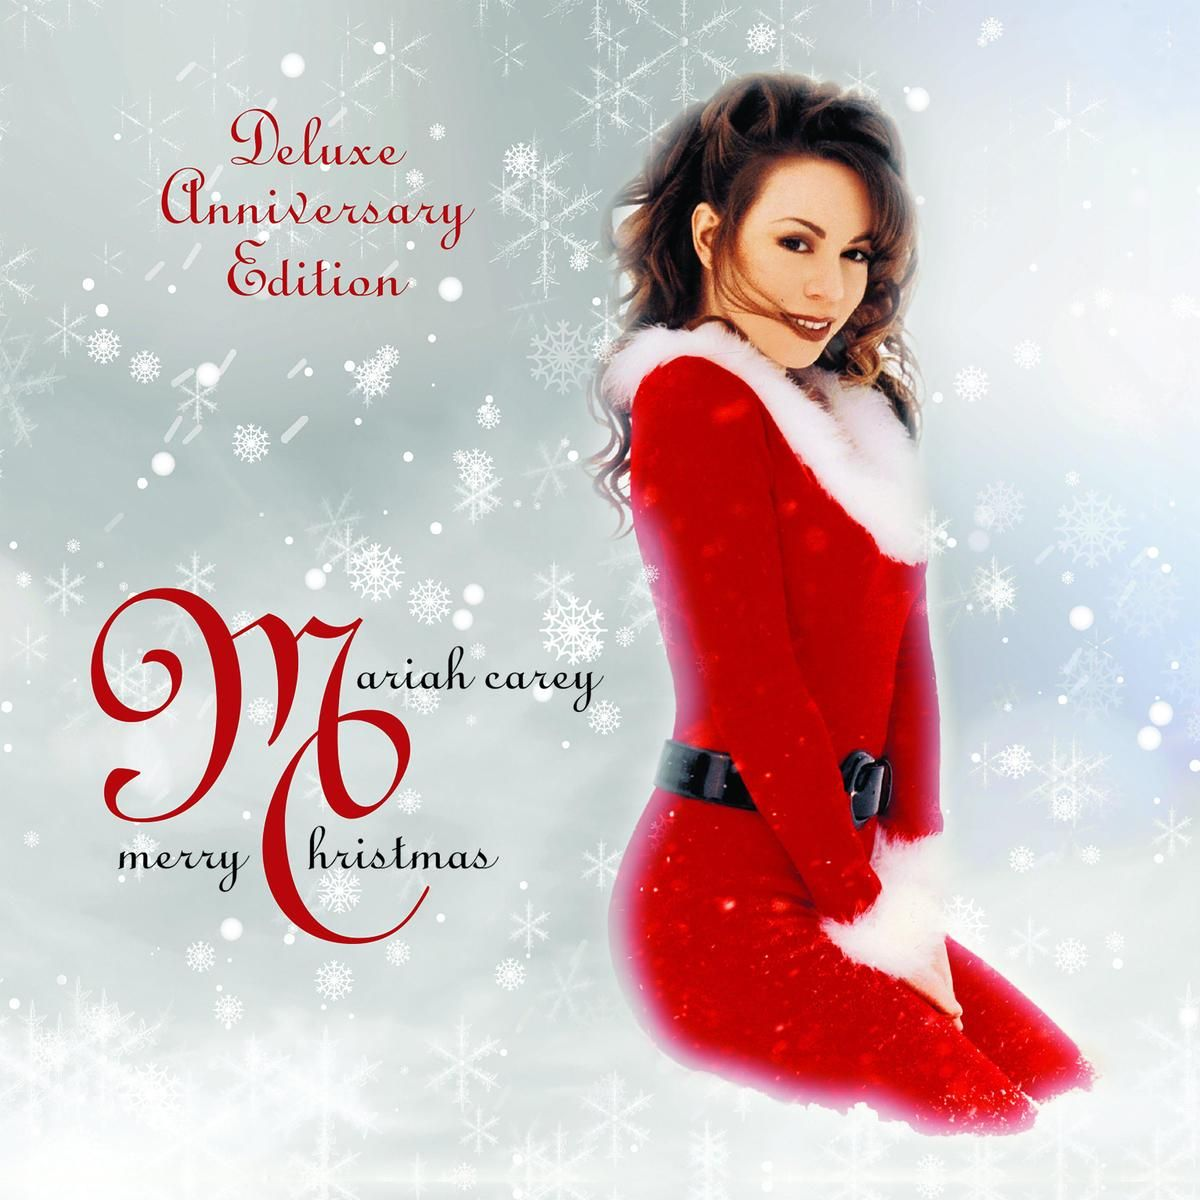 Merry Christmas Deluxe Anniversary Edition 2cd Mariah Carey Mariah Carey Christmas Mariah Carey Mariah Carey Merry Christmas